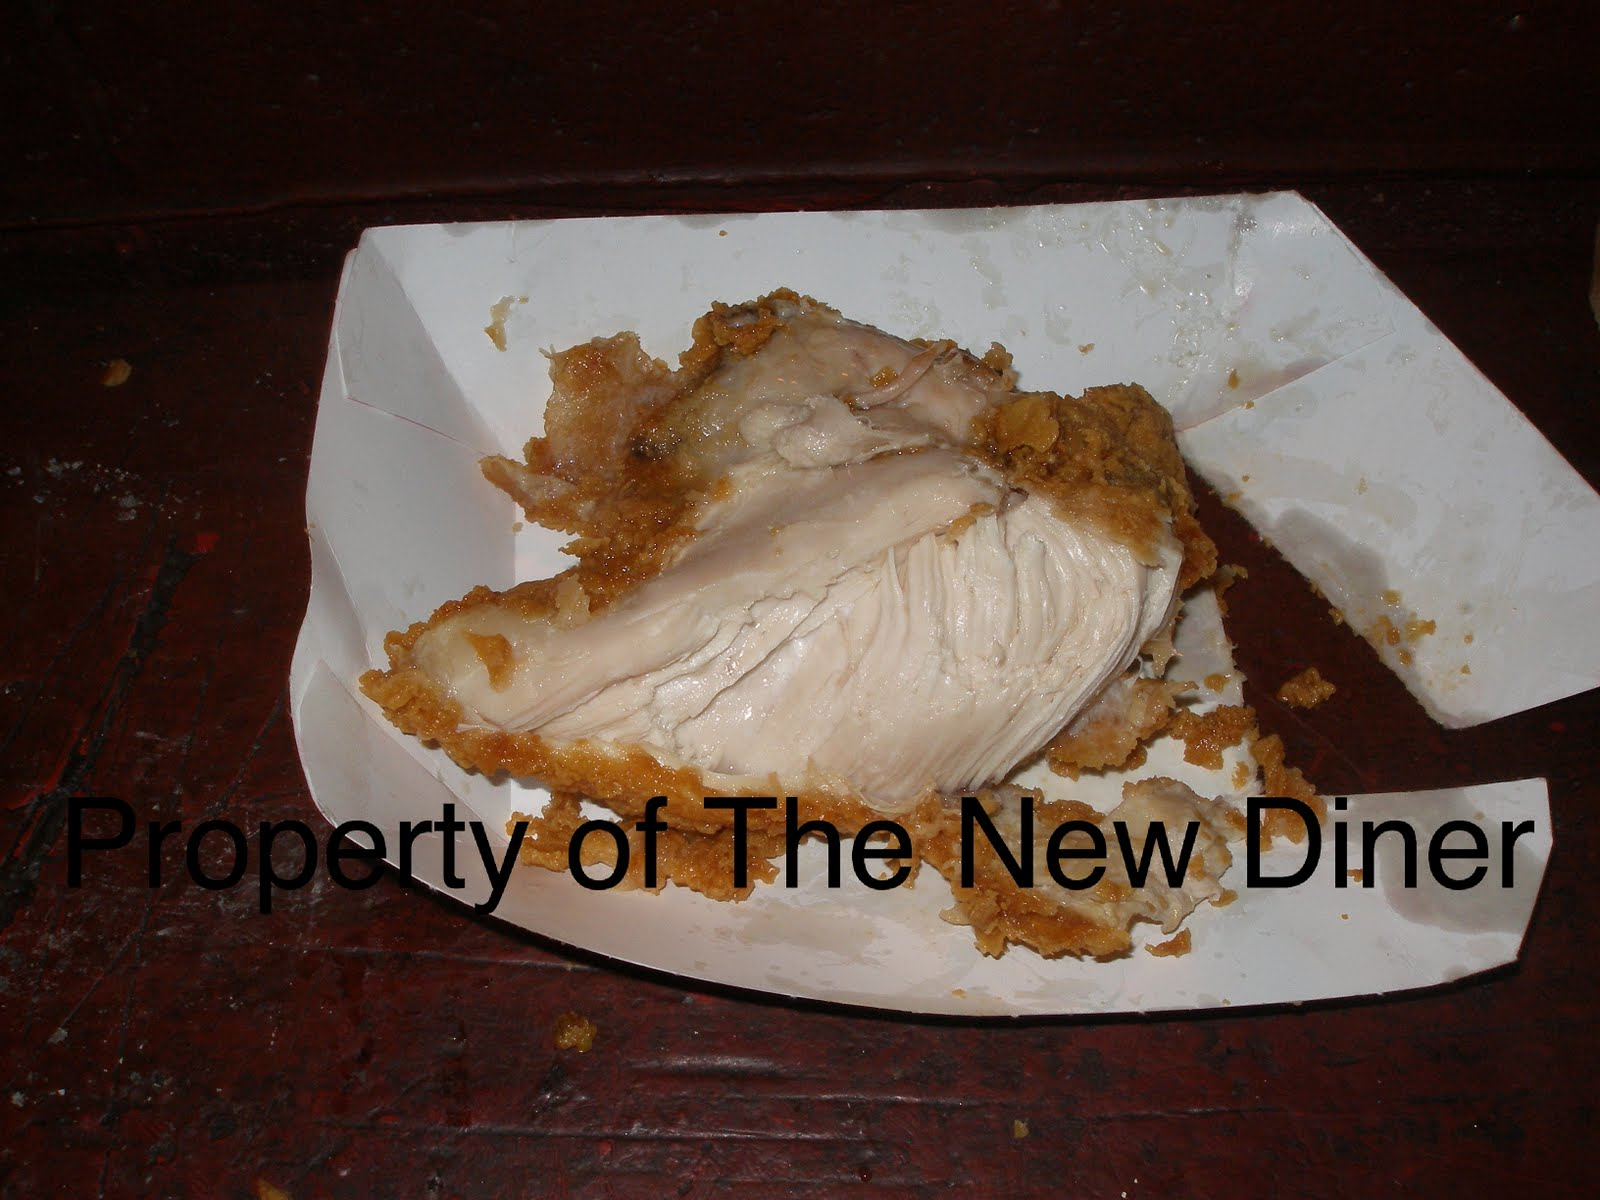 The New Diner: Jim Dandy Fried Chicken